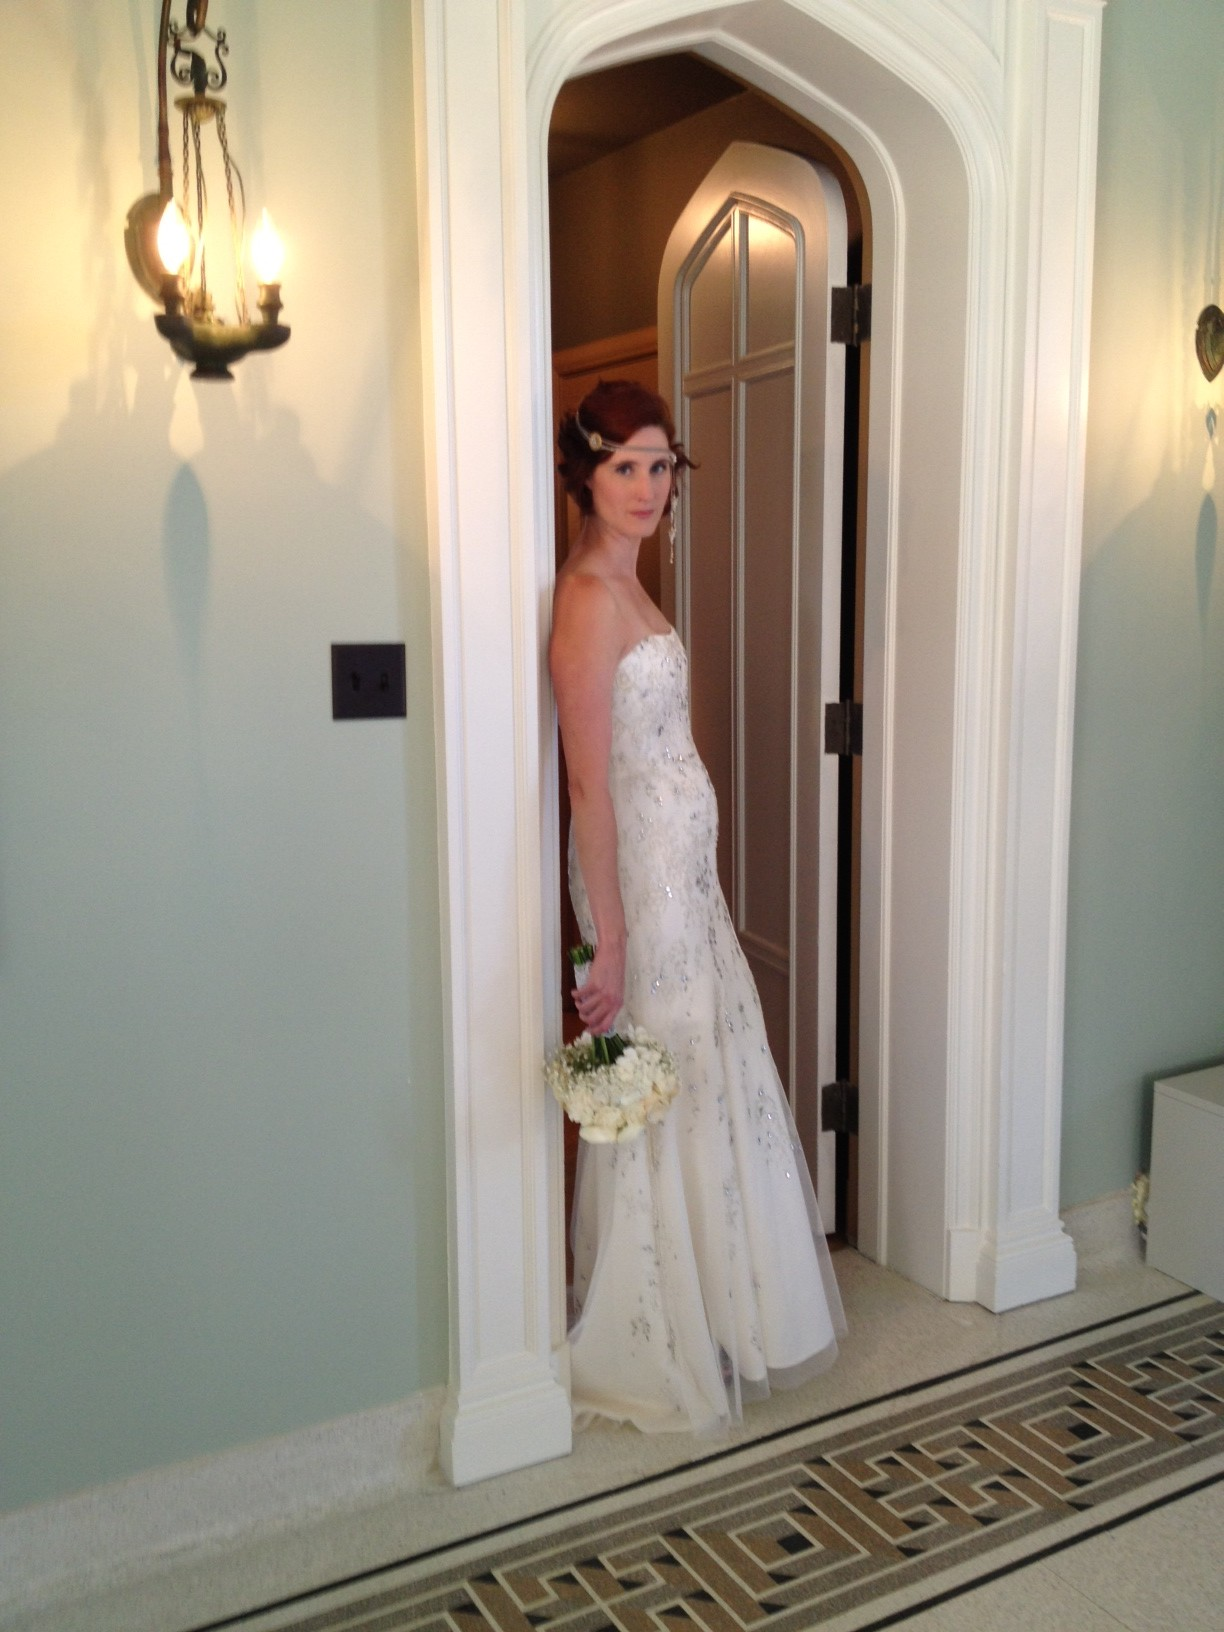 Jenny Packham gown at The Great Gatsby themed wedding shoot